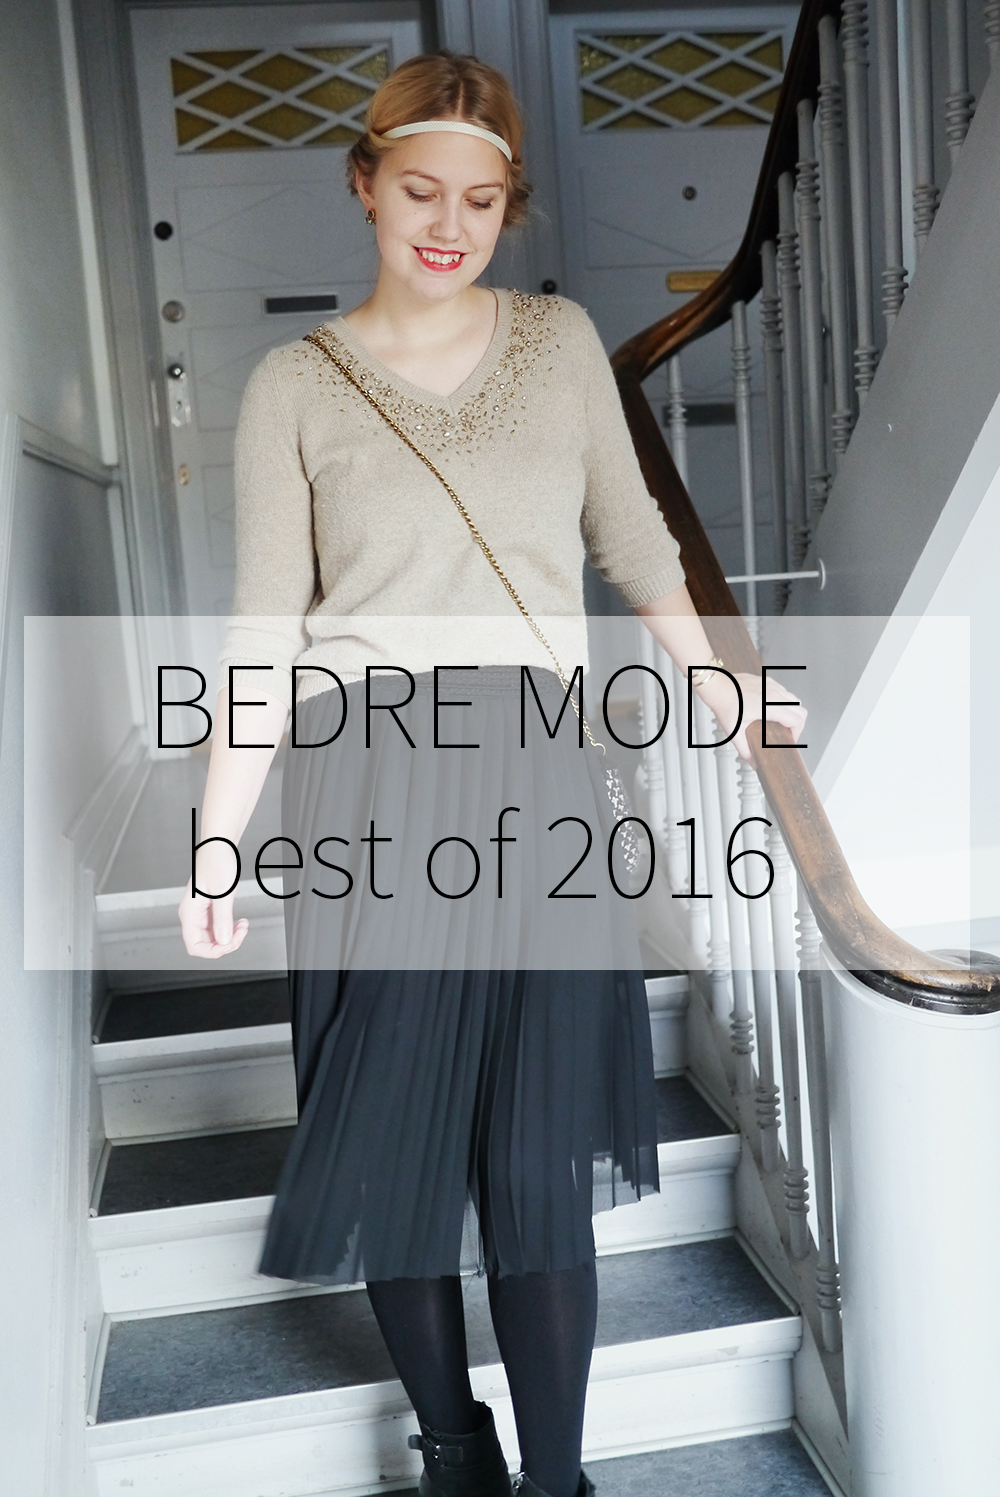 bedremode-best-of-2016